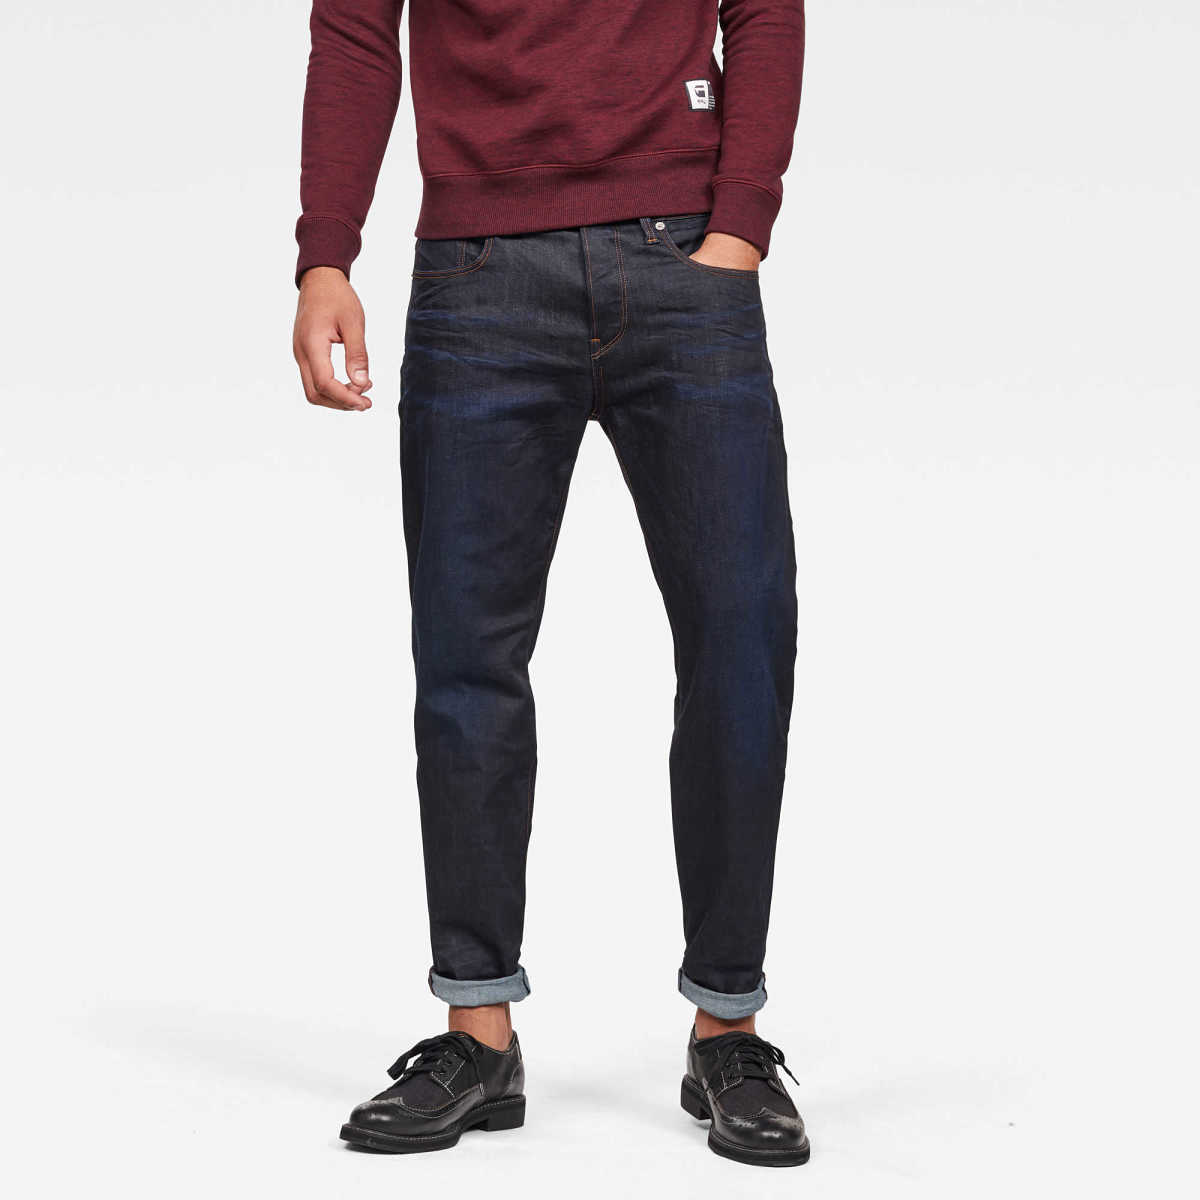 G-Star Male 3301 Relaxed Jeans Relaxed Dark Blue USA - GOOFASH - Mens JEANS